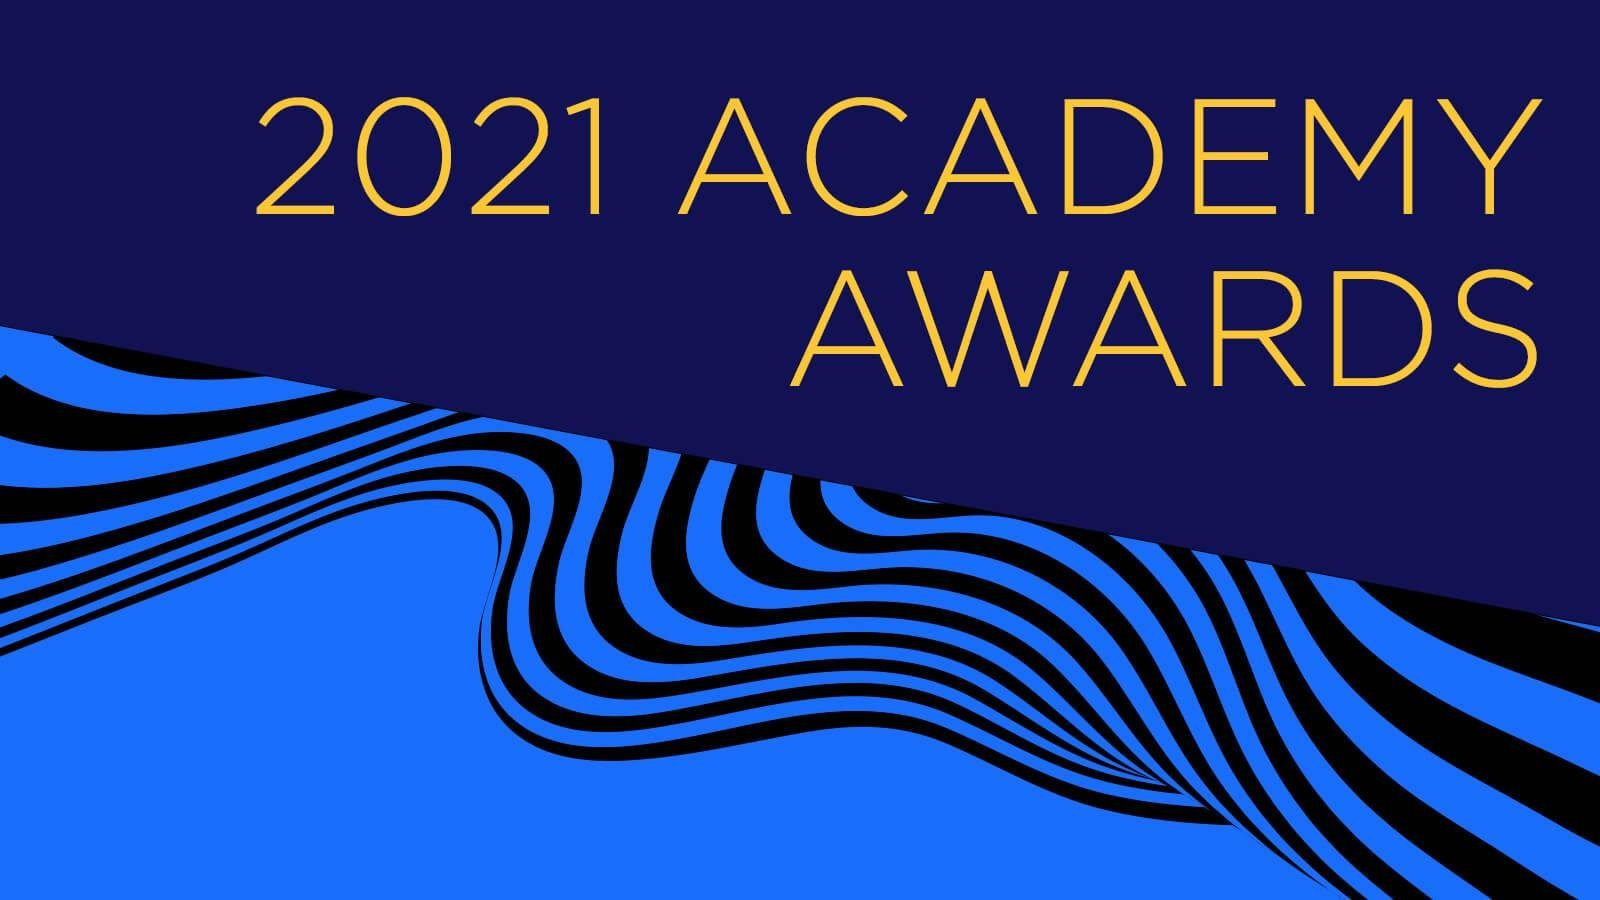 2021 Academy Awards: 80+ Grads Credited on Nominated Films - Story image